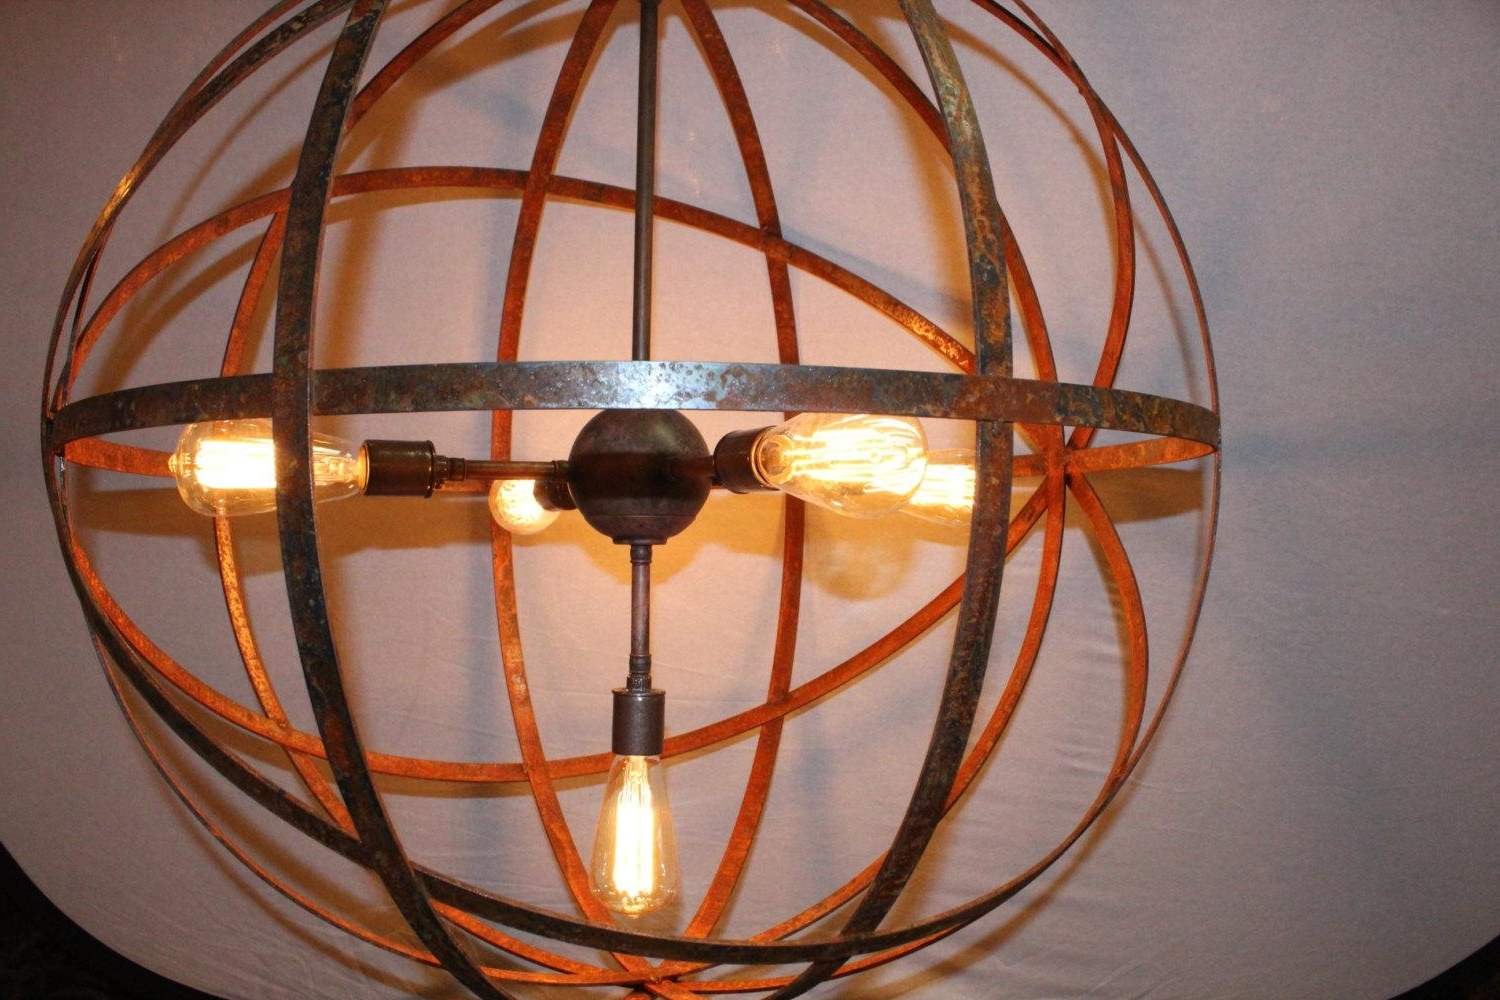 Metal Sphere Chandelier For Preferred Metal Sphere Chandelier — Cookwithalocal Home And Space Decor : Made (View 12 of 15)